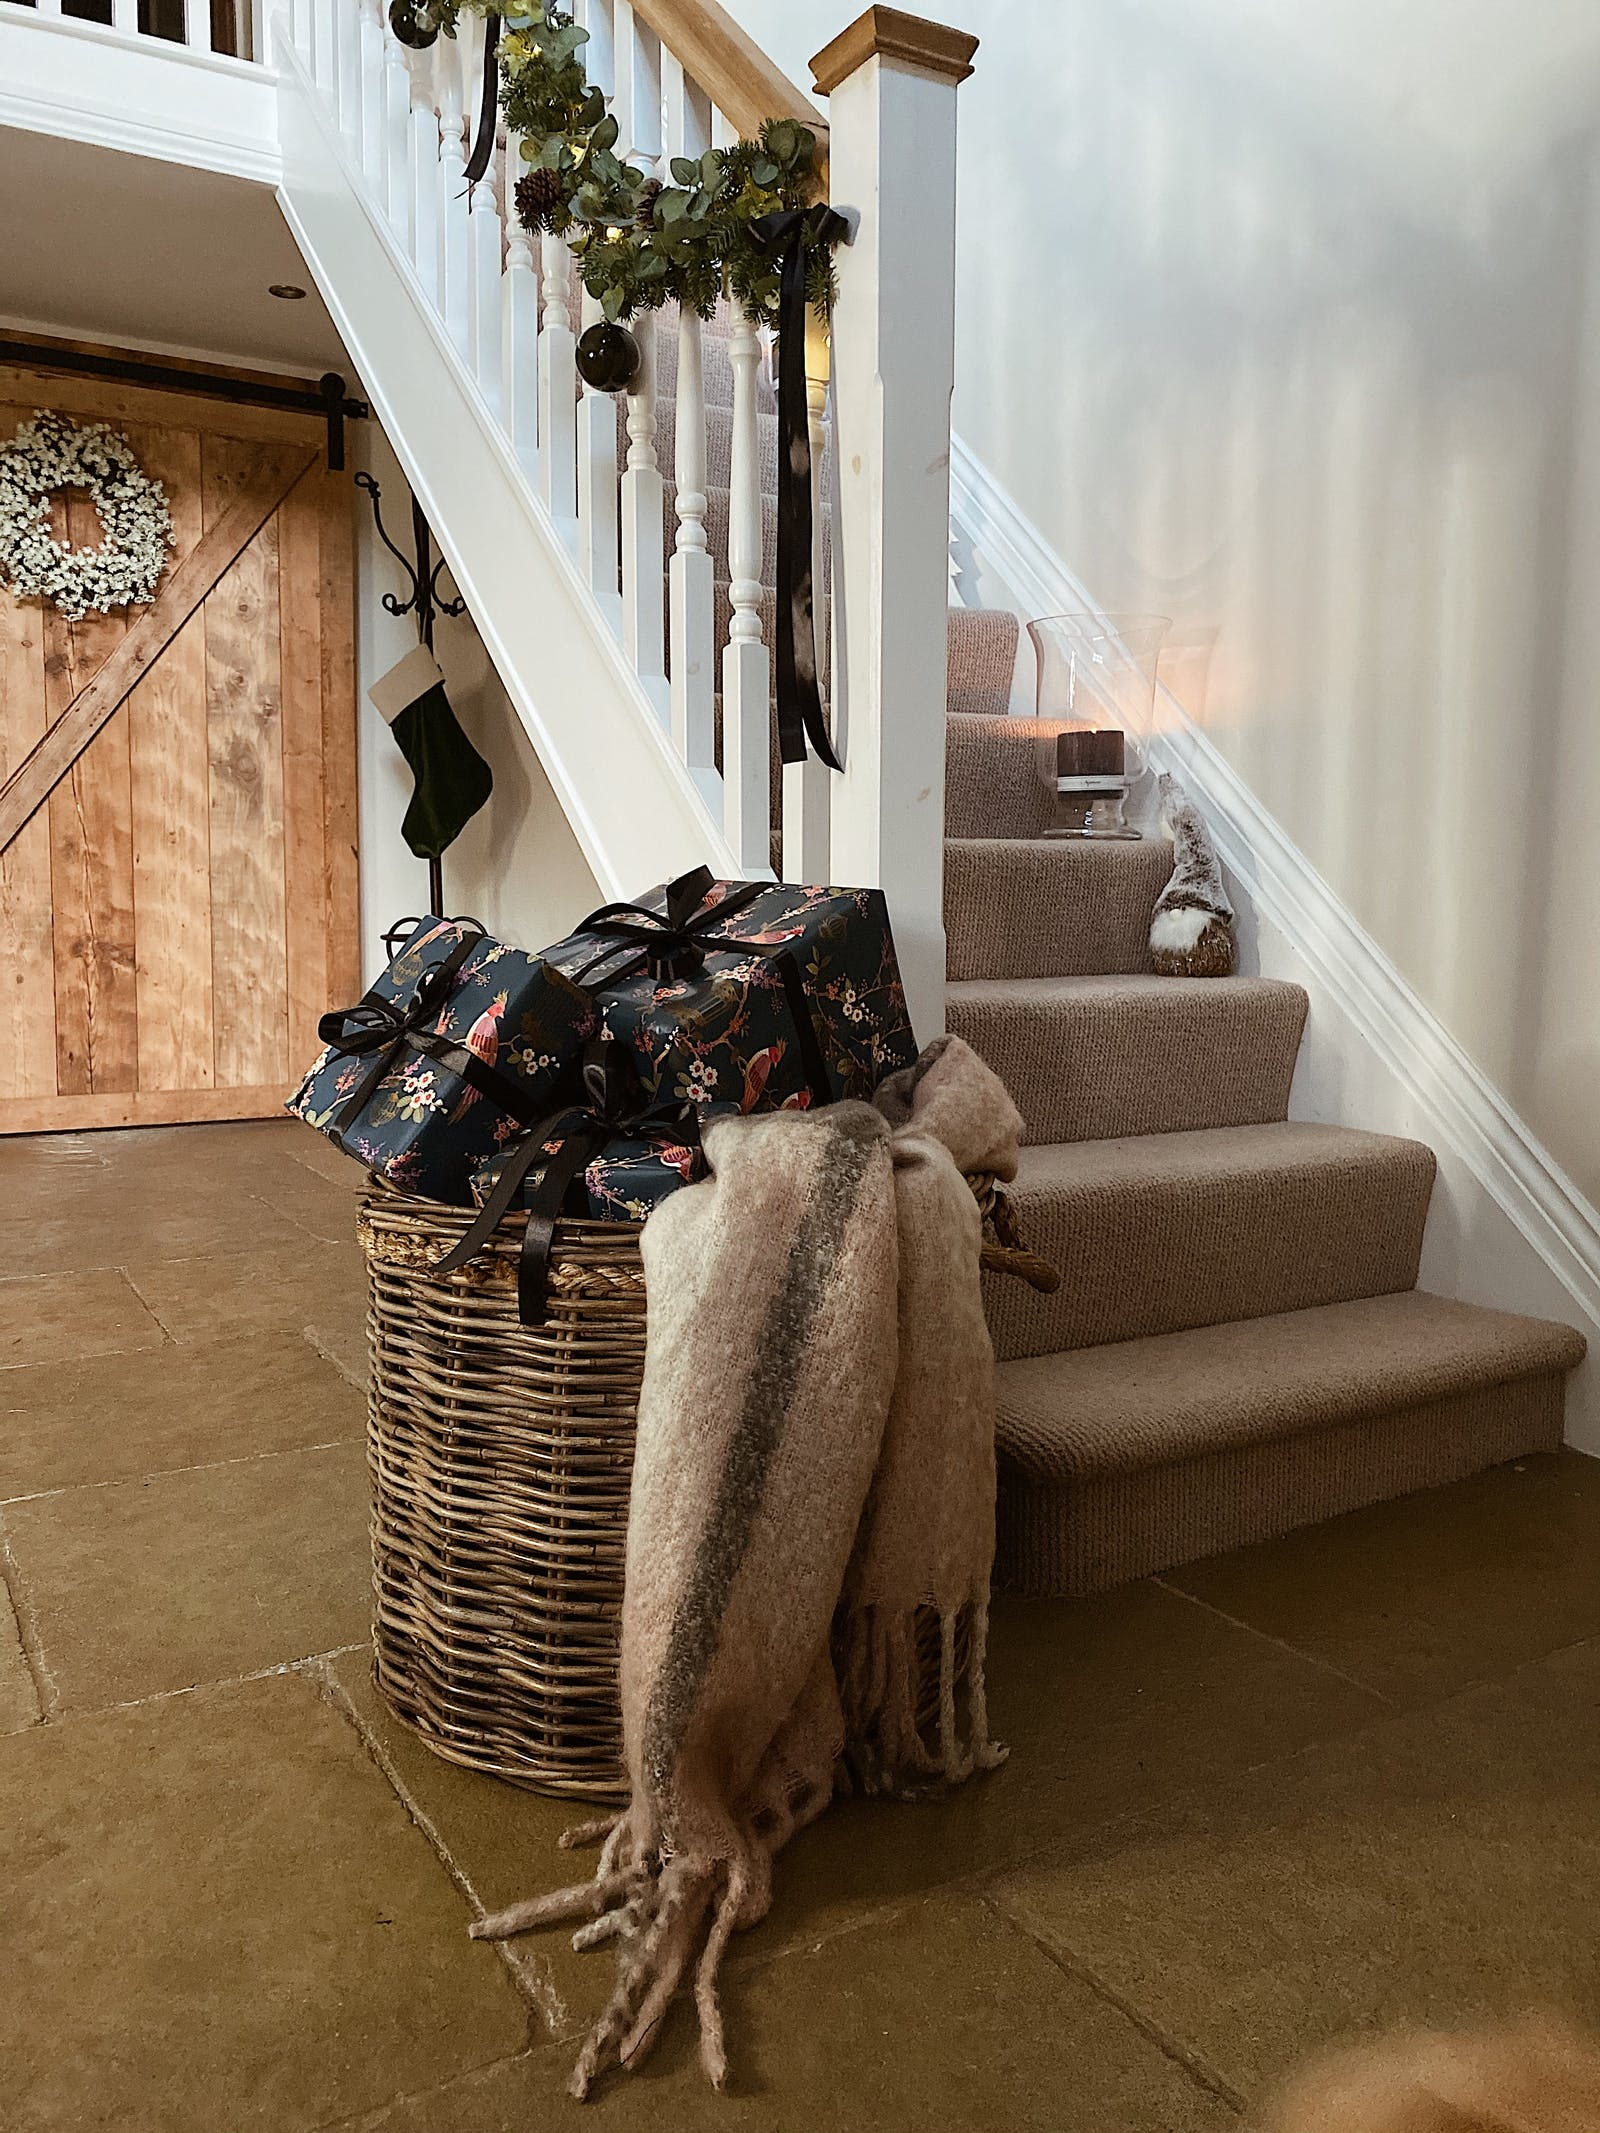 Hallway with big woven basket with gifts and fresh foliage on the stairwell